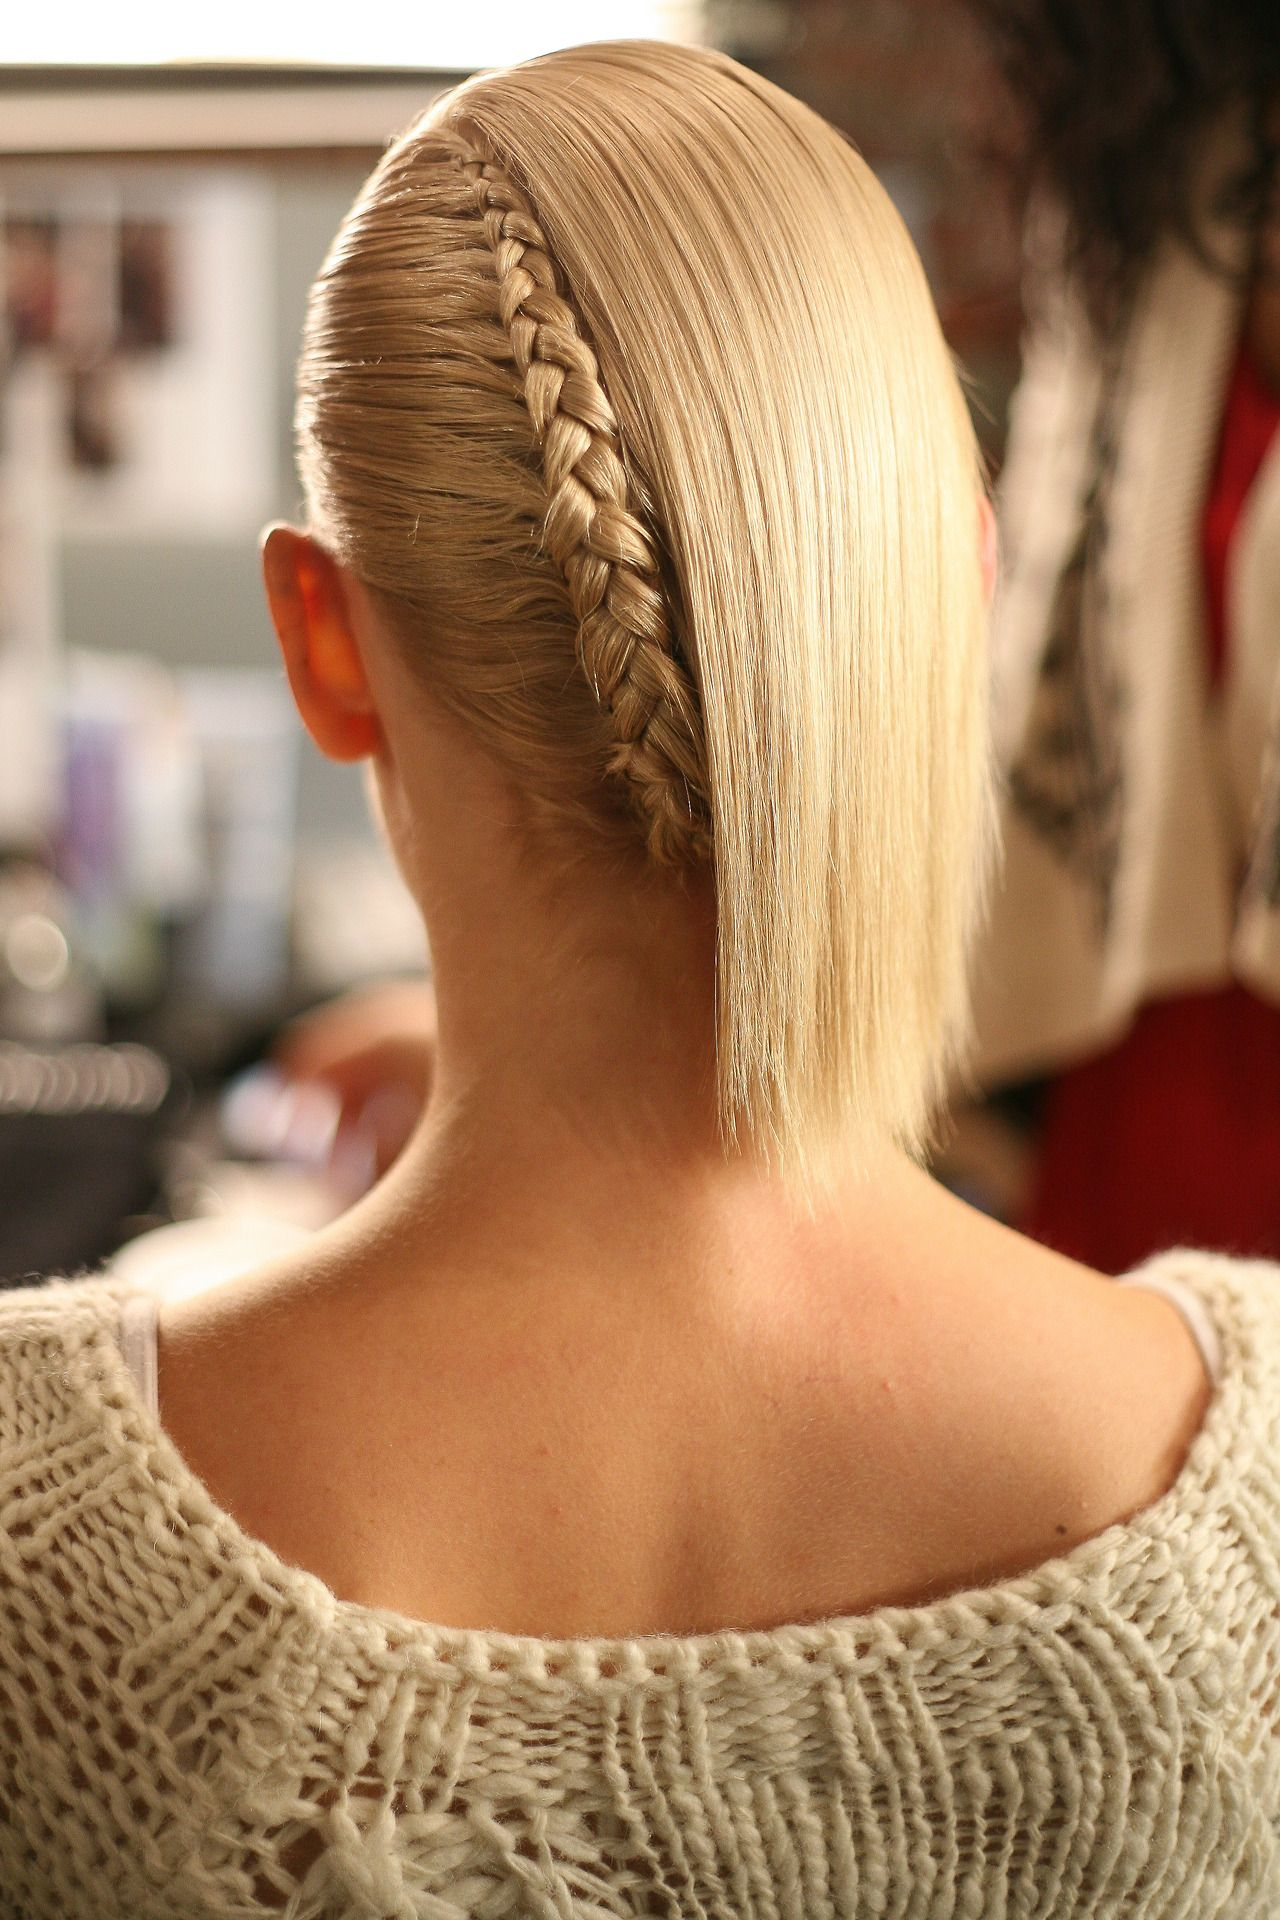 A fun look for summer... #PersonalLeadership #Women Braid Backstage, Alexandre Herchcovitch, Fall 2013 #NYFW